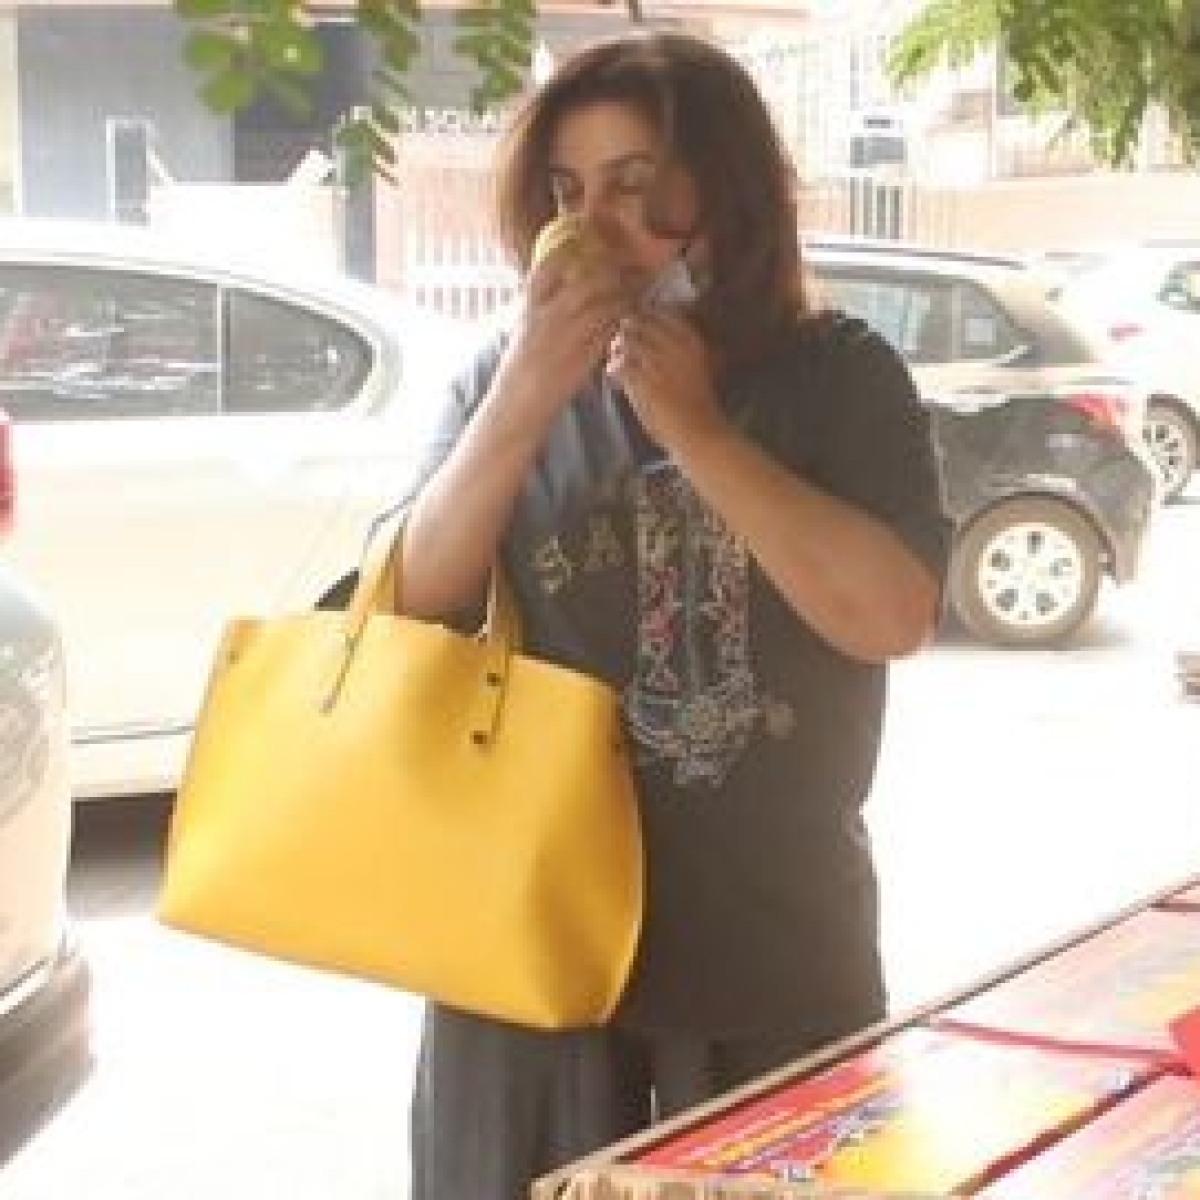 Watch: Farah Khan smelling mangoes at a fruit stand invites social media fury